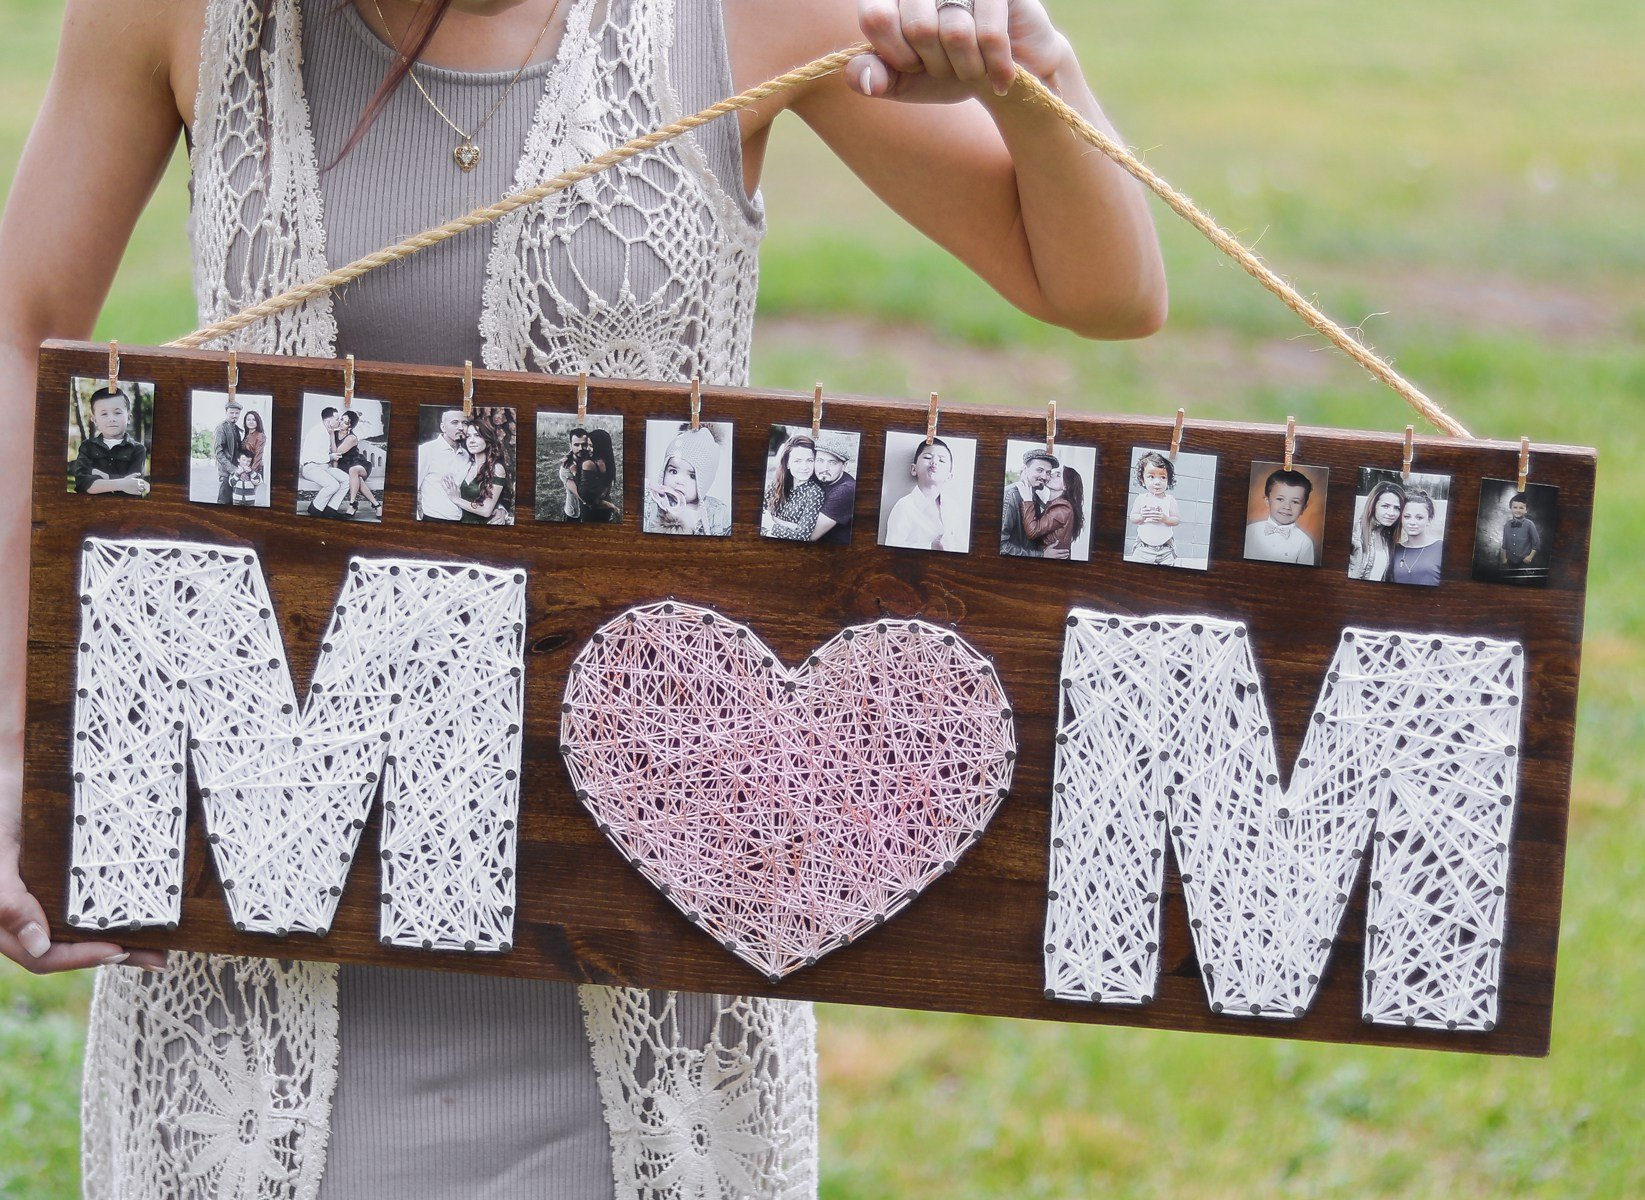 String Art Photo Frame Mother's Day Gift from Lily Ardor at A Creative Life | The Most Fabulous Mother's Day Gift Ideas!